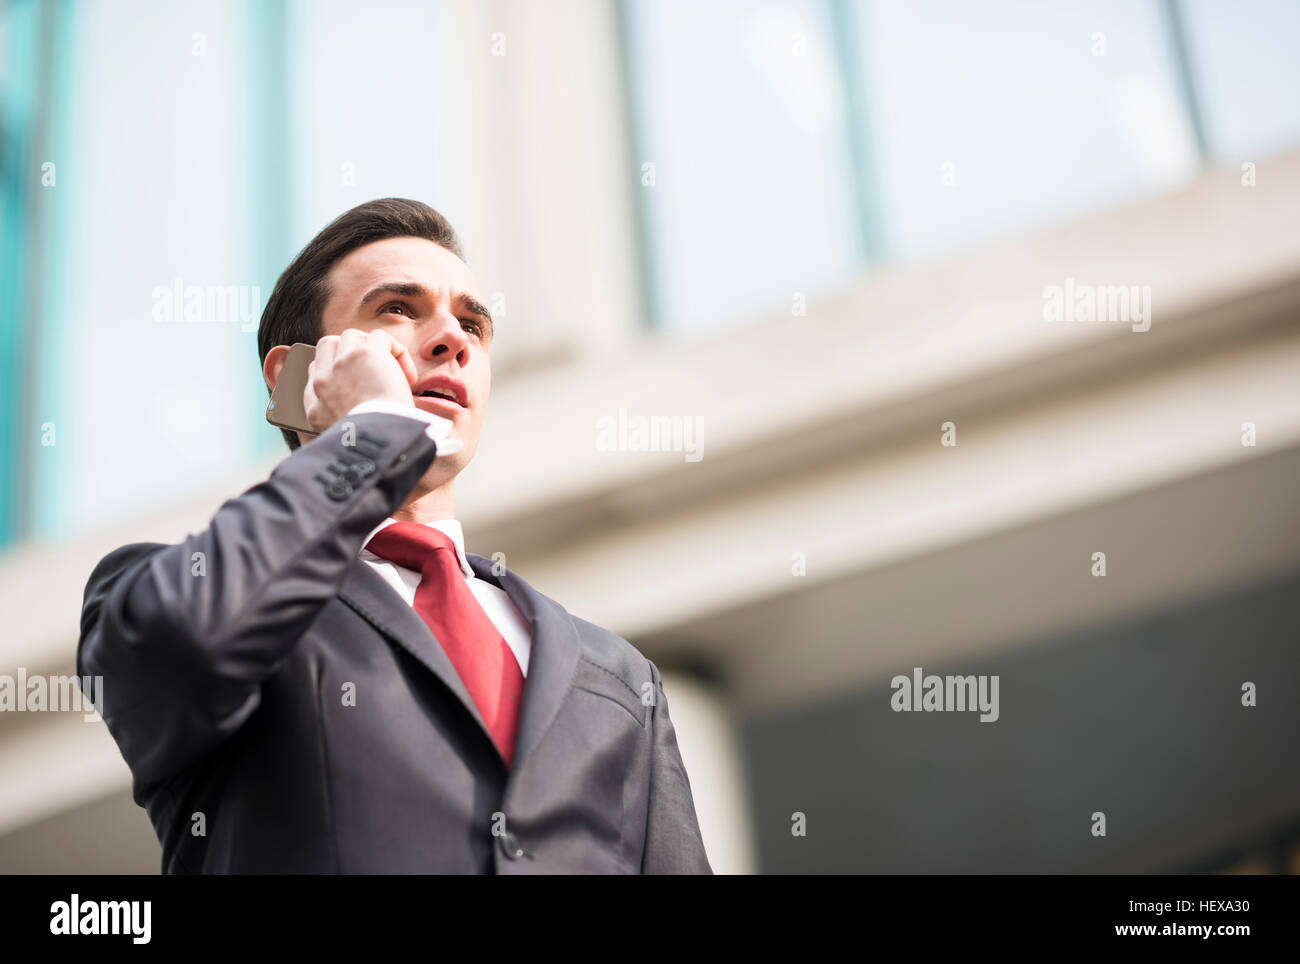 Businessman in city making telephone call - Stock Image